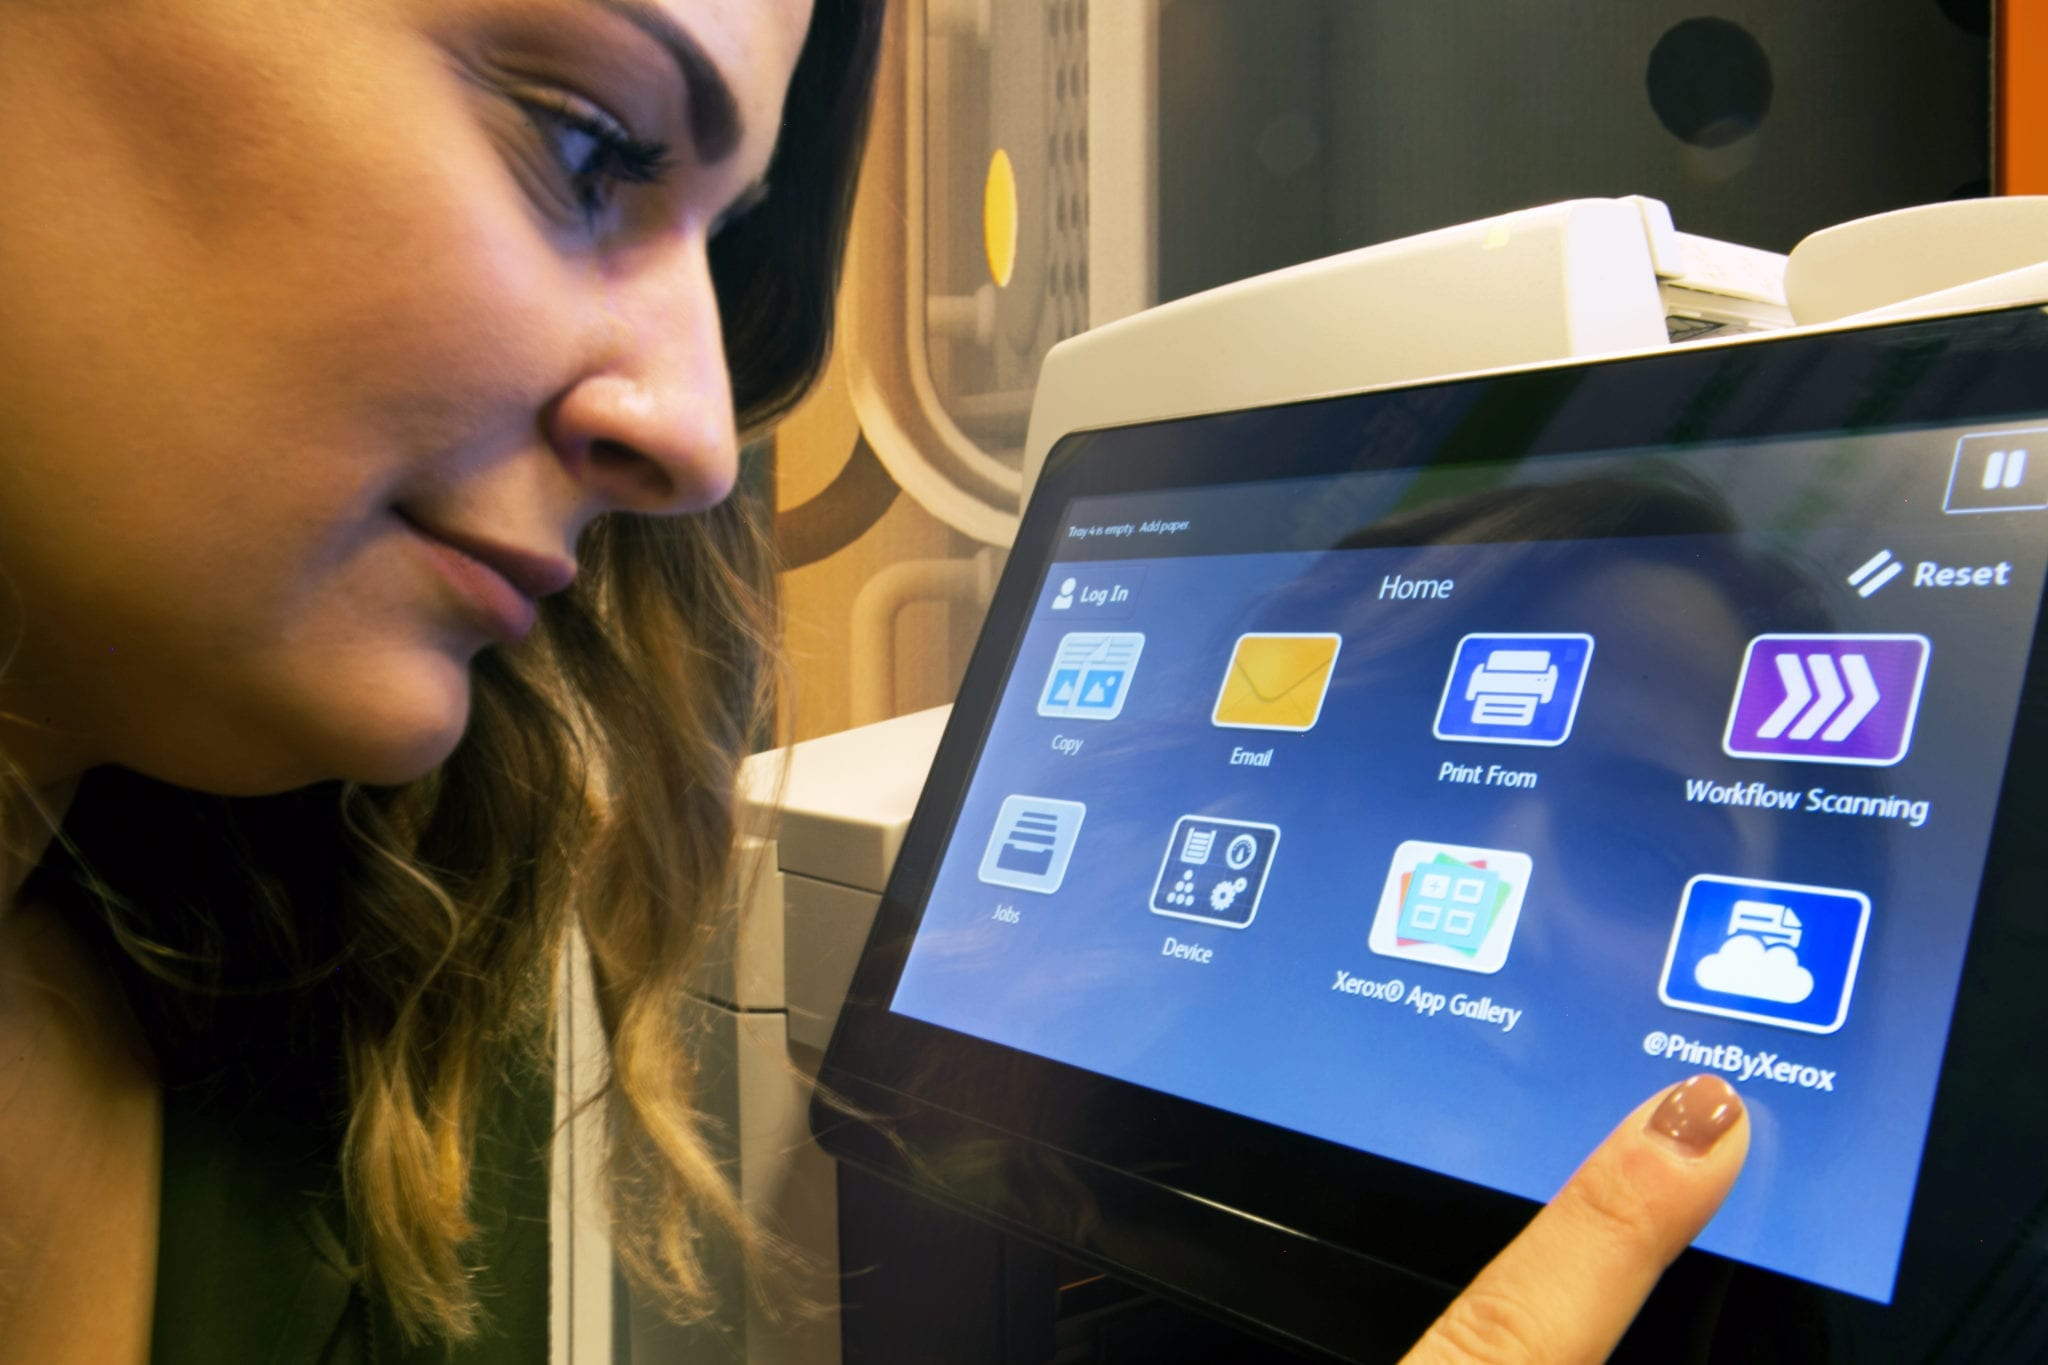 Xerox engineers develop UI for Xerox ConnectKey enabled MFPs that integrates with app world